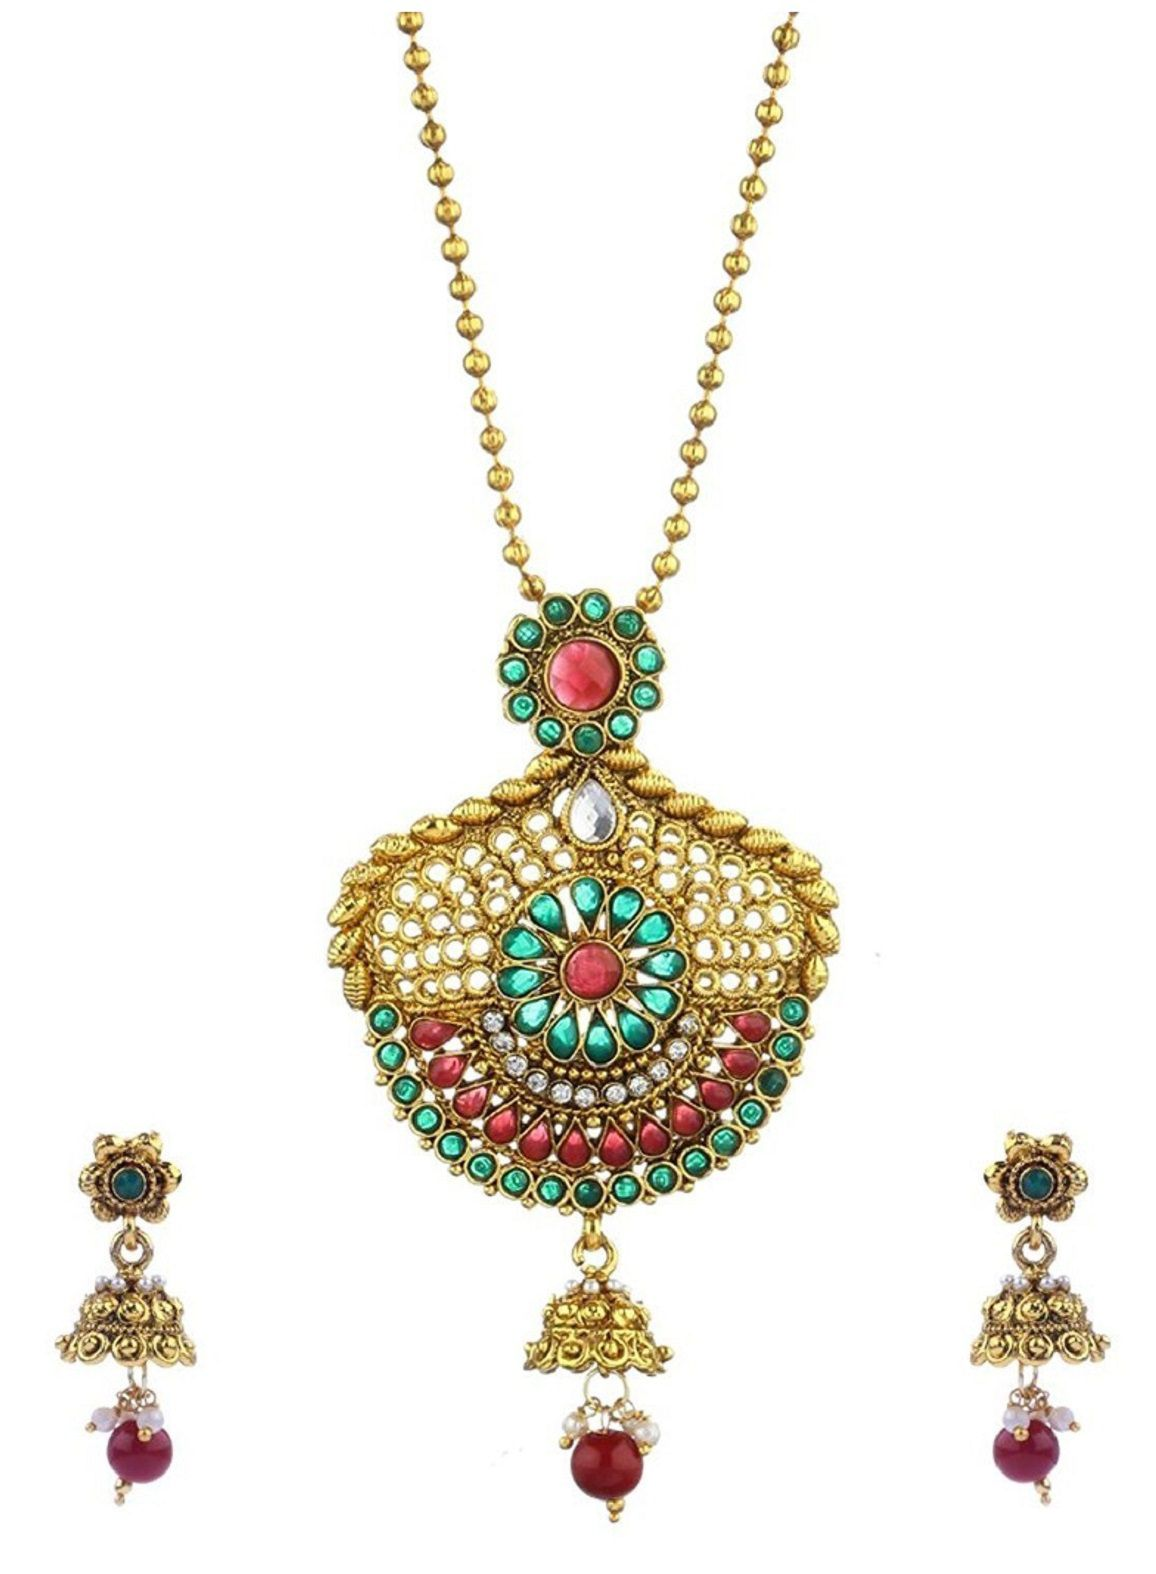 Aabhu Gold Plated Long Mor Pankh Design Pendant Necklace Jewllery Set Haram Mala With Earrings Jewellery For Women And Girl